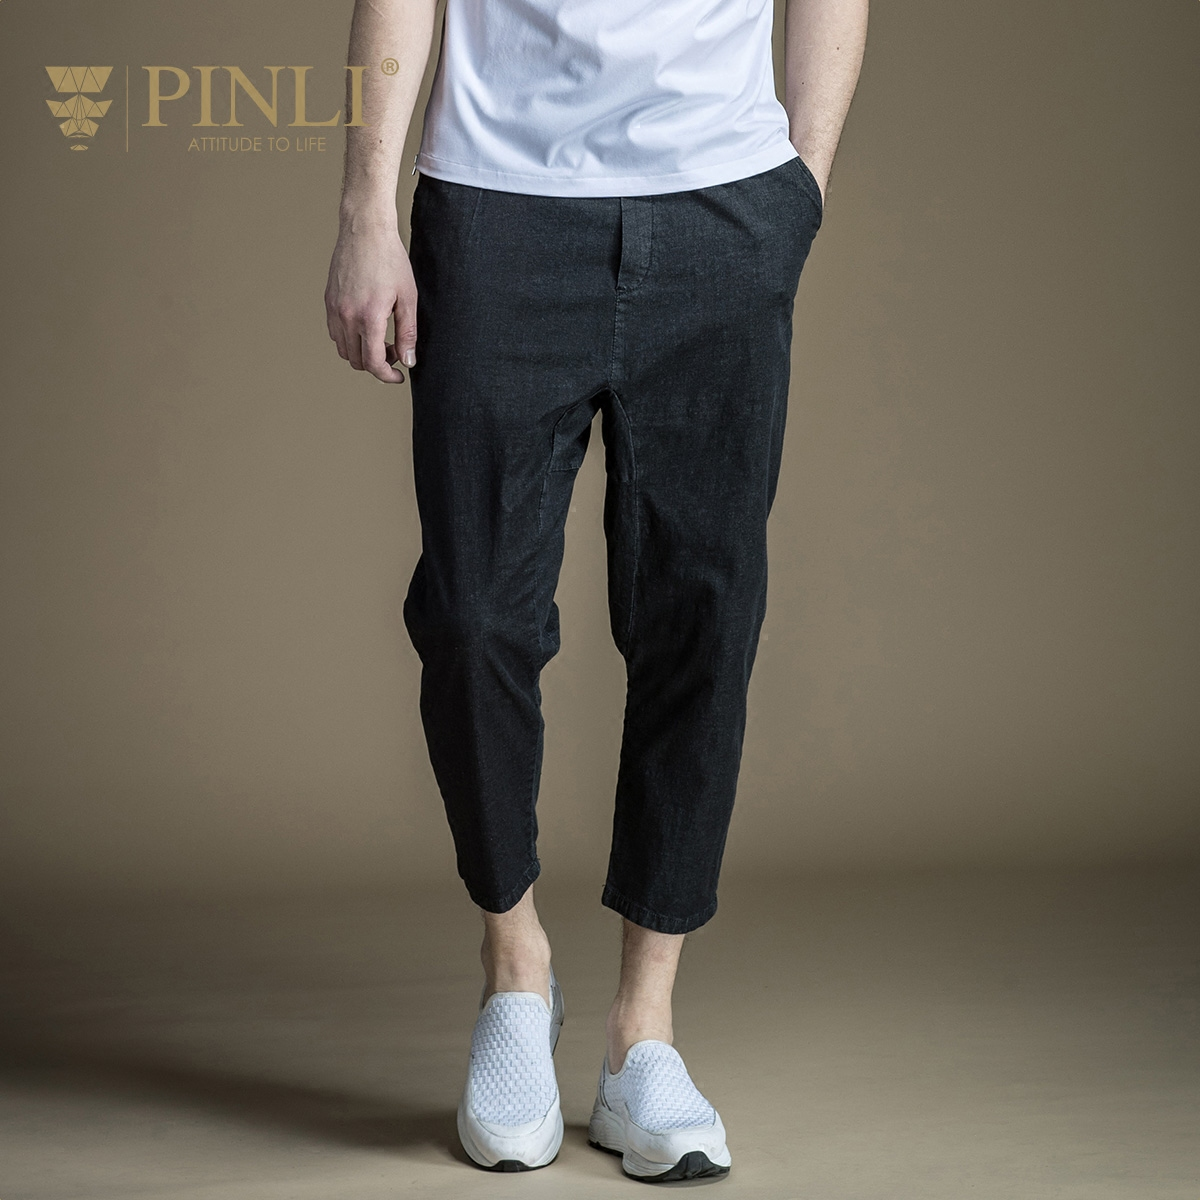 Pinli Promotion Acetate Knee Length Midweight Pencil Pants Mid Product 2017 New Summer Mens Quality Slim Jeans D172416008 Îäåæäà è àêñåññóàðû<br><br>